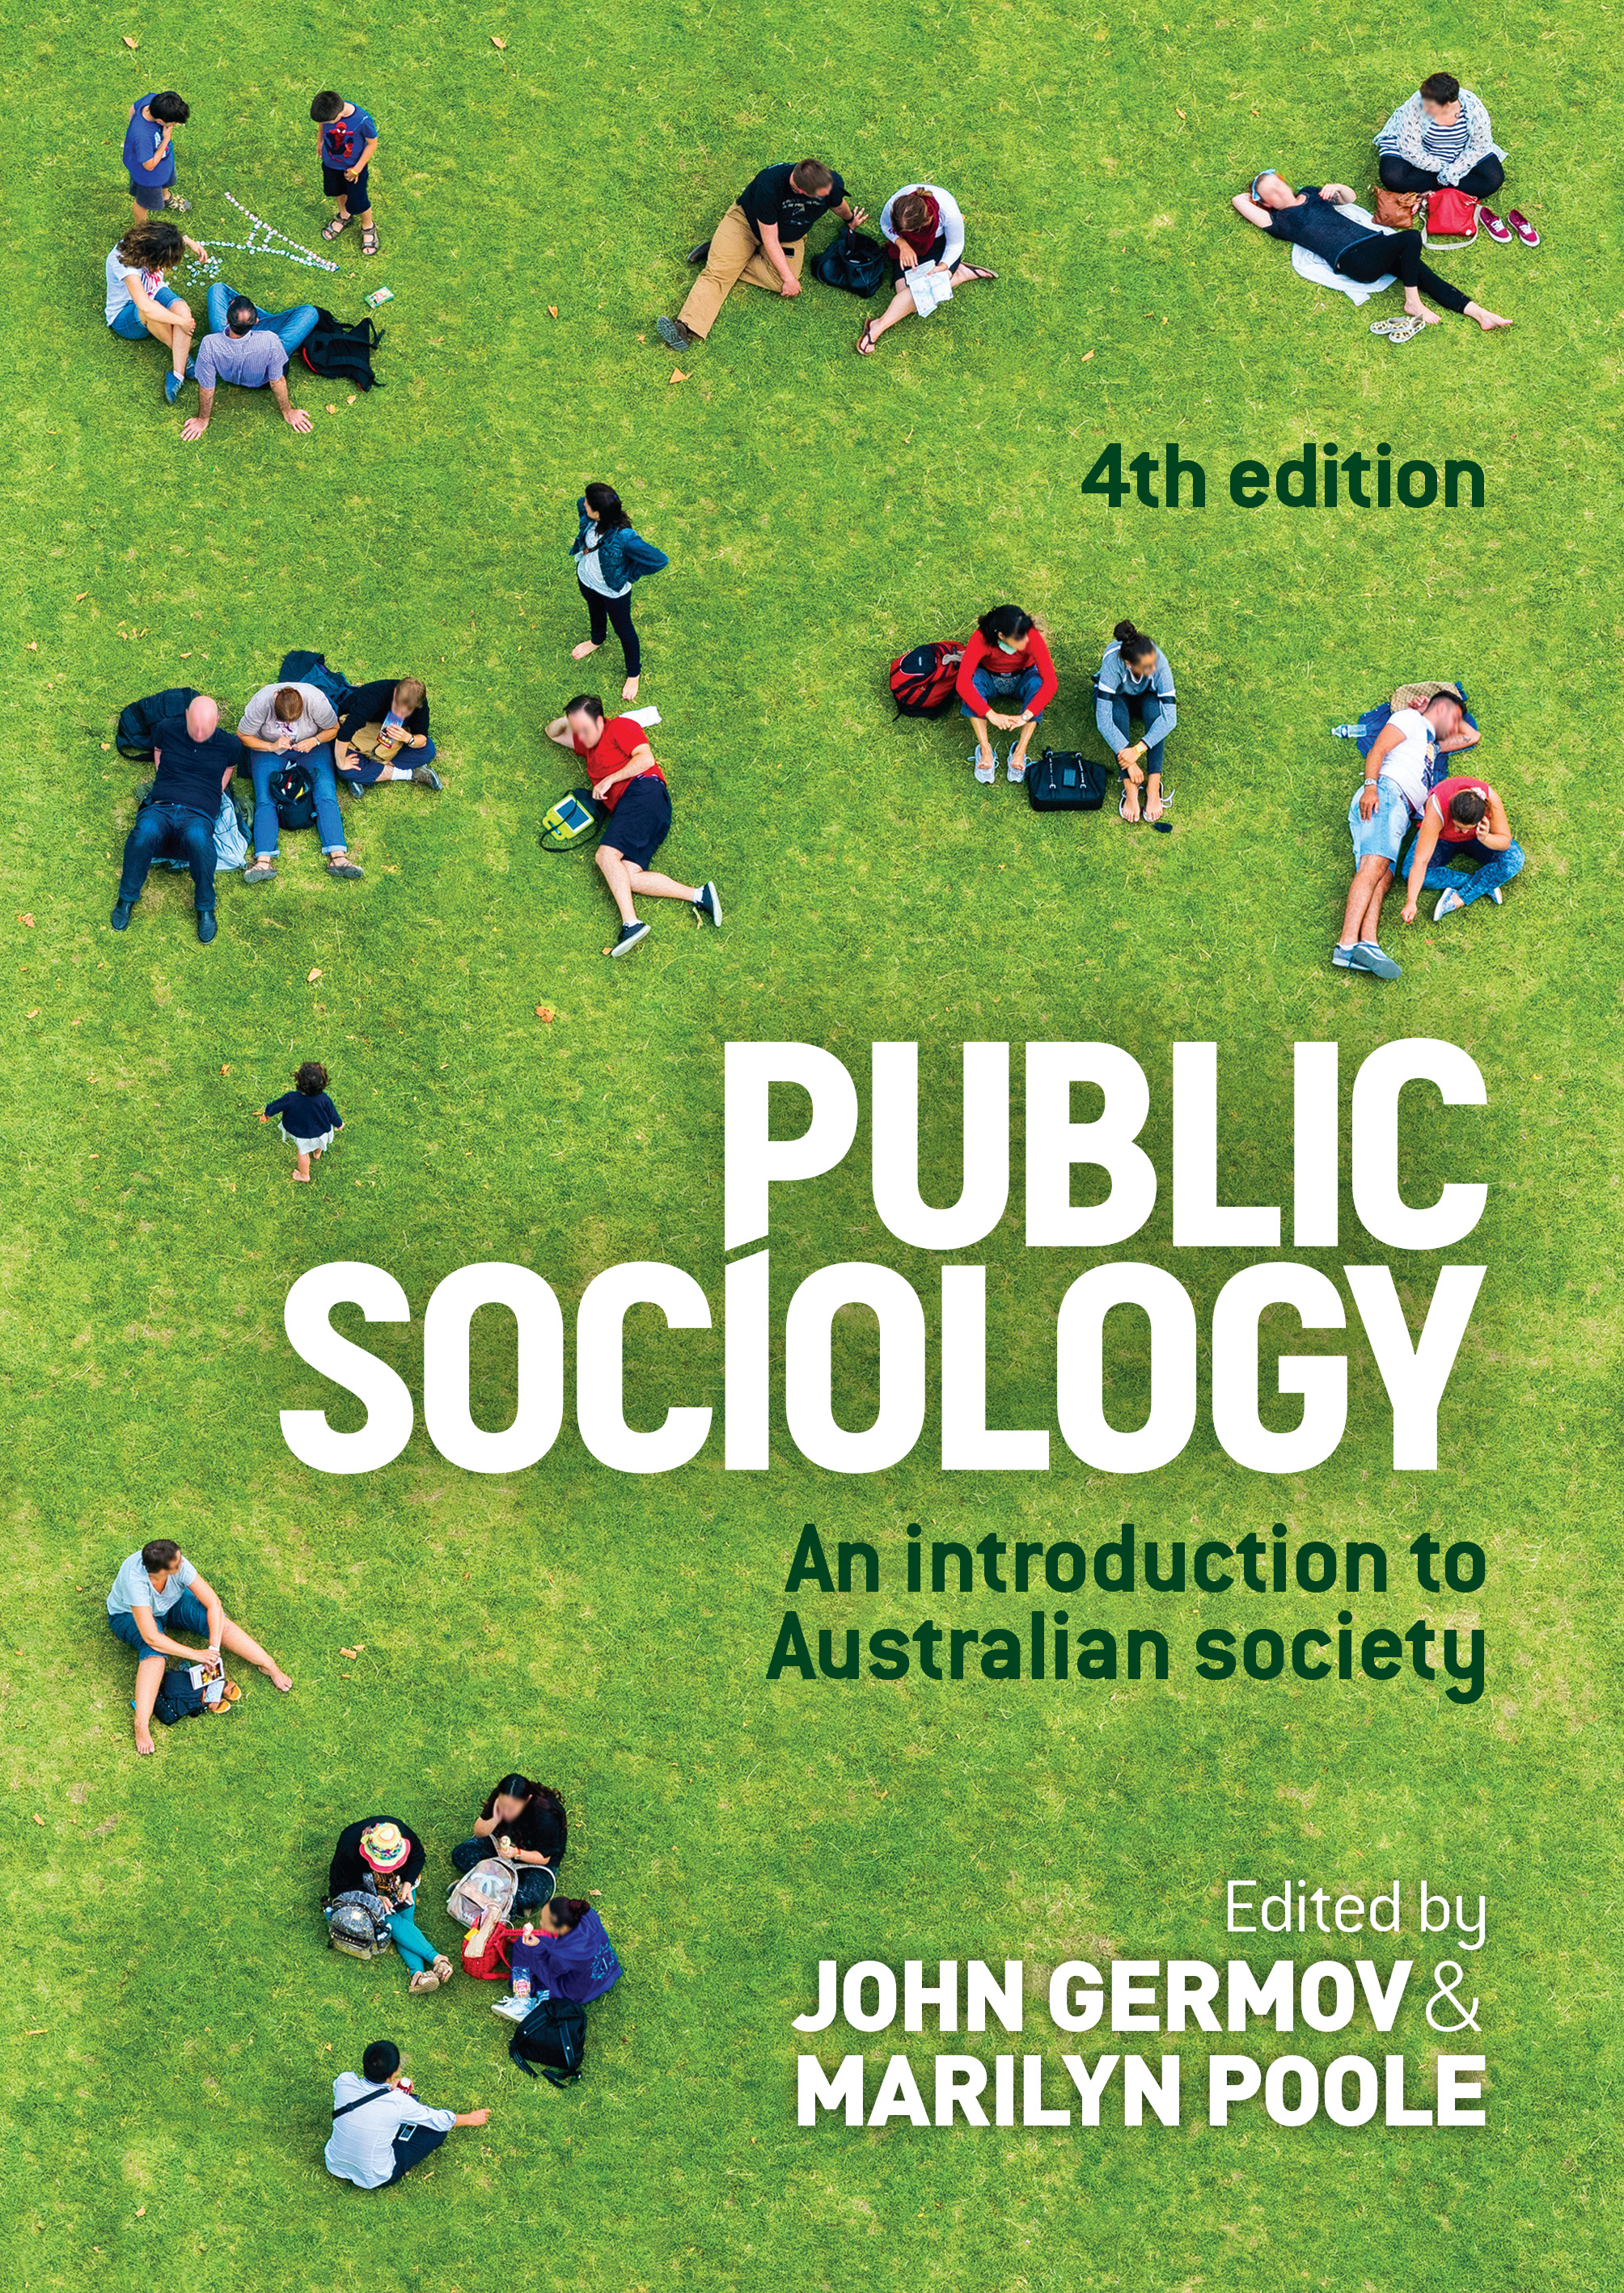 Public sociology 4th edition - Australia's leading introductory sociology textbook